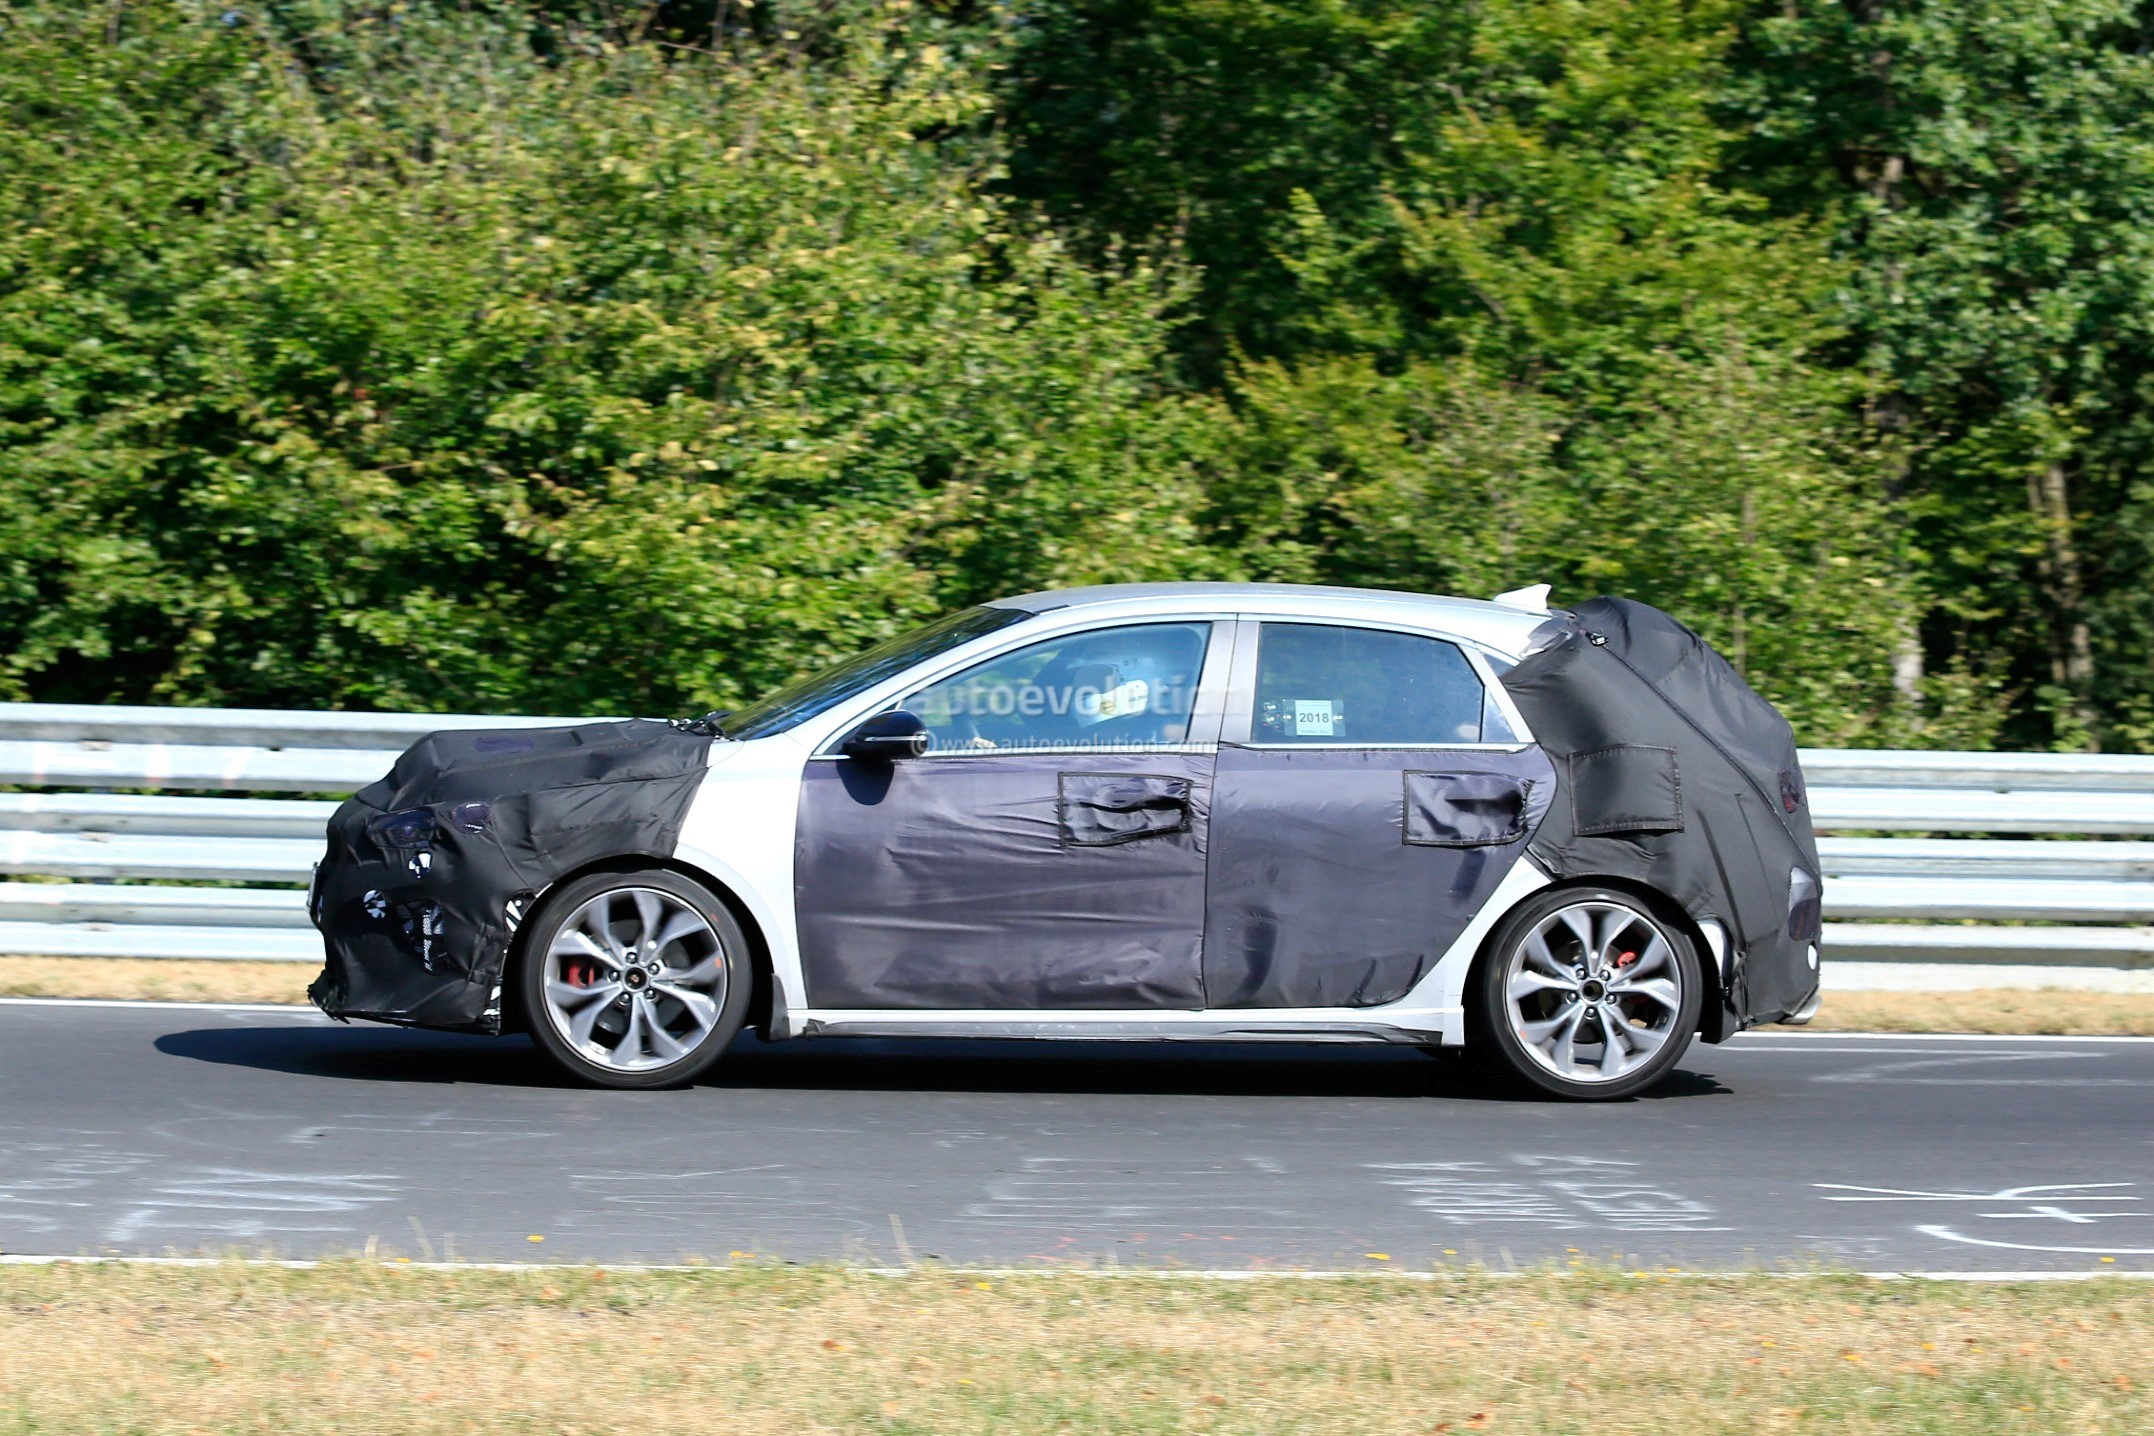 2019 Kia Proceed Shooting Brake Spied Together With Ceed ...